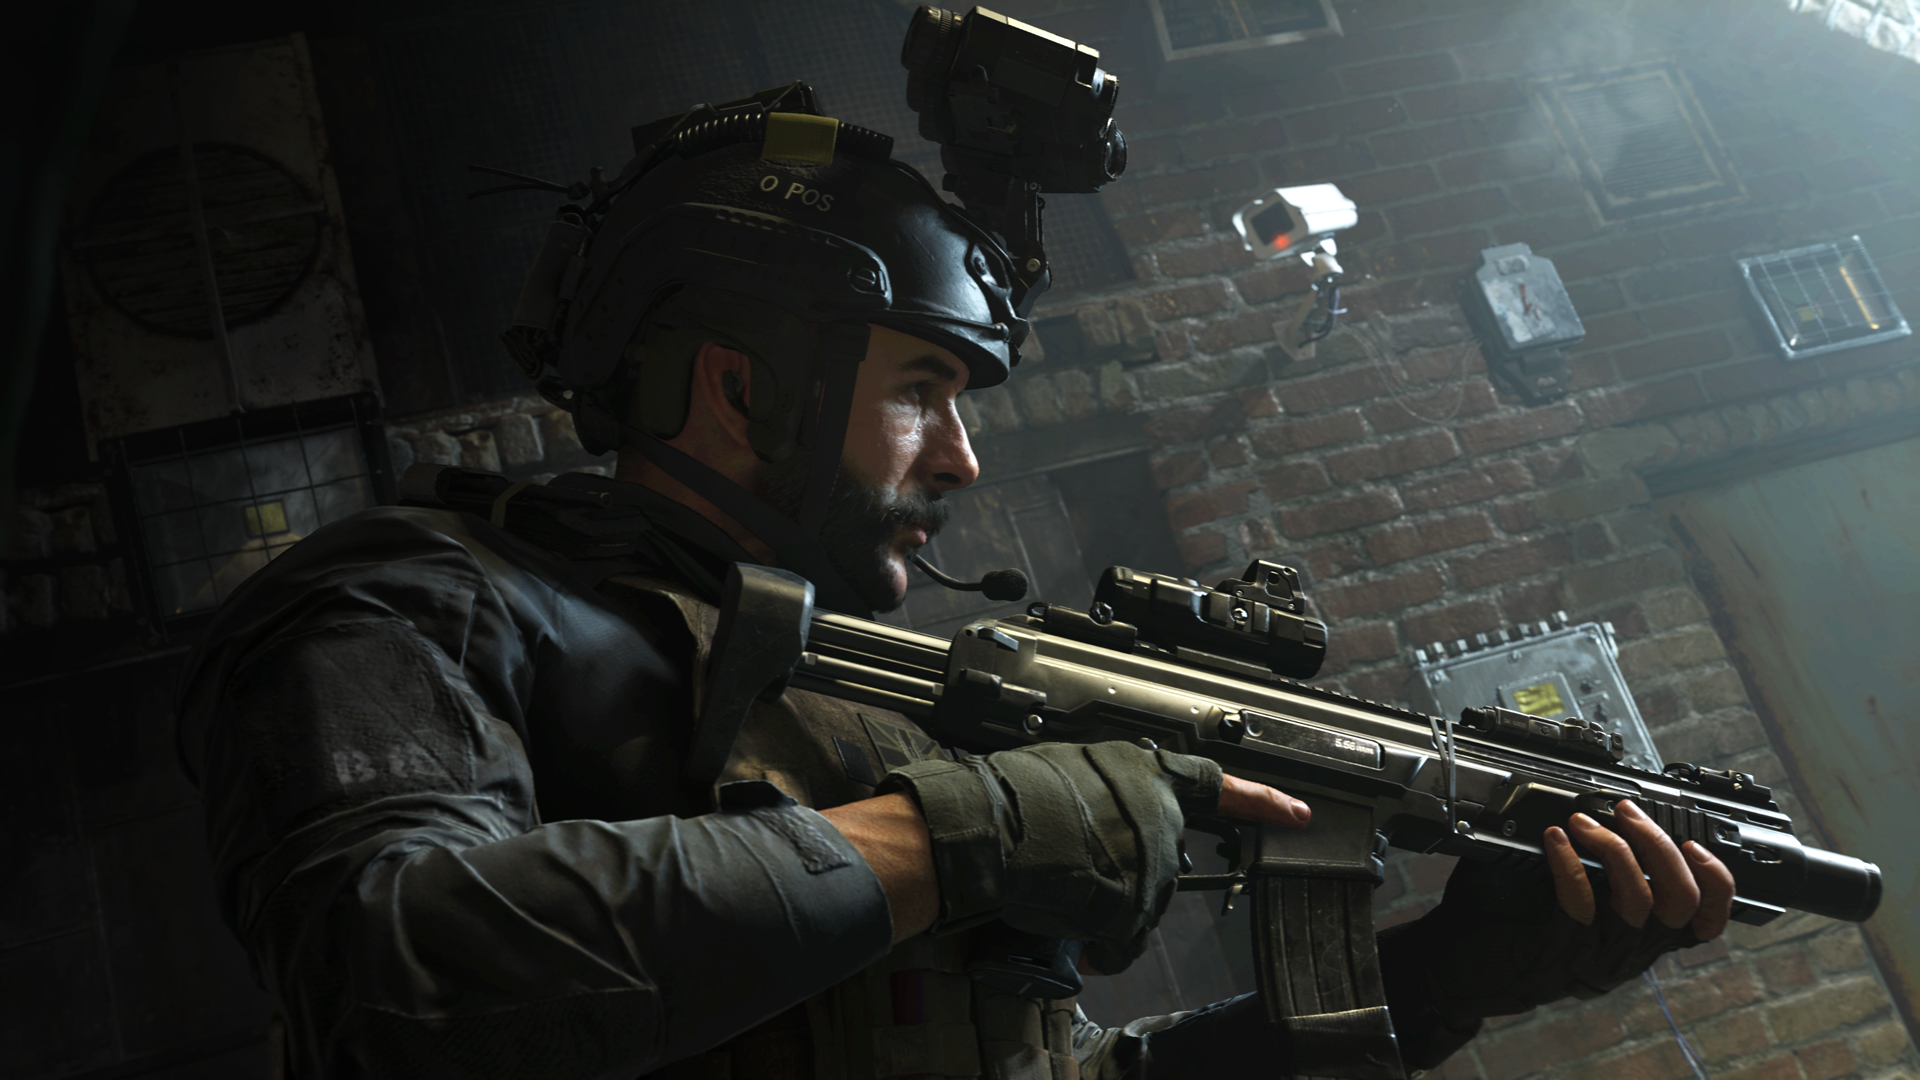 Modern Warfare Guns All The Weapons Confirmed For The Next Call Of Duty Gamesradar